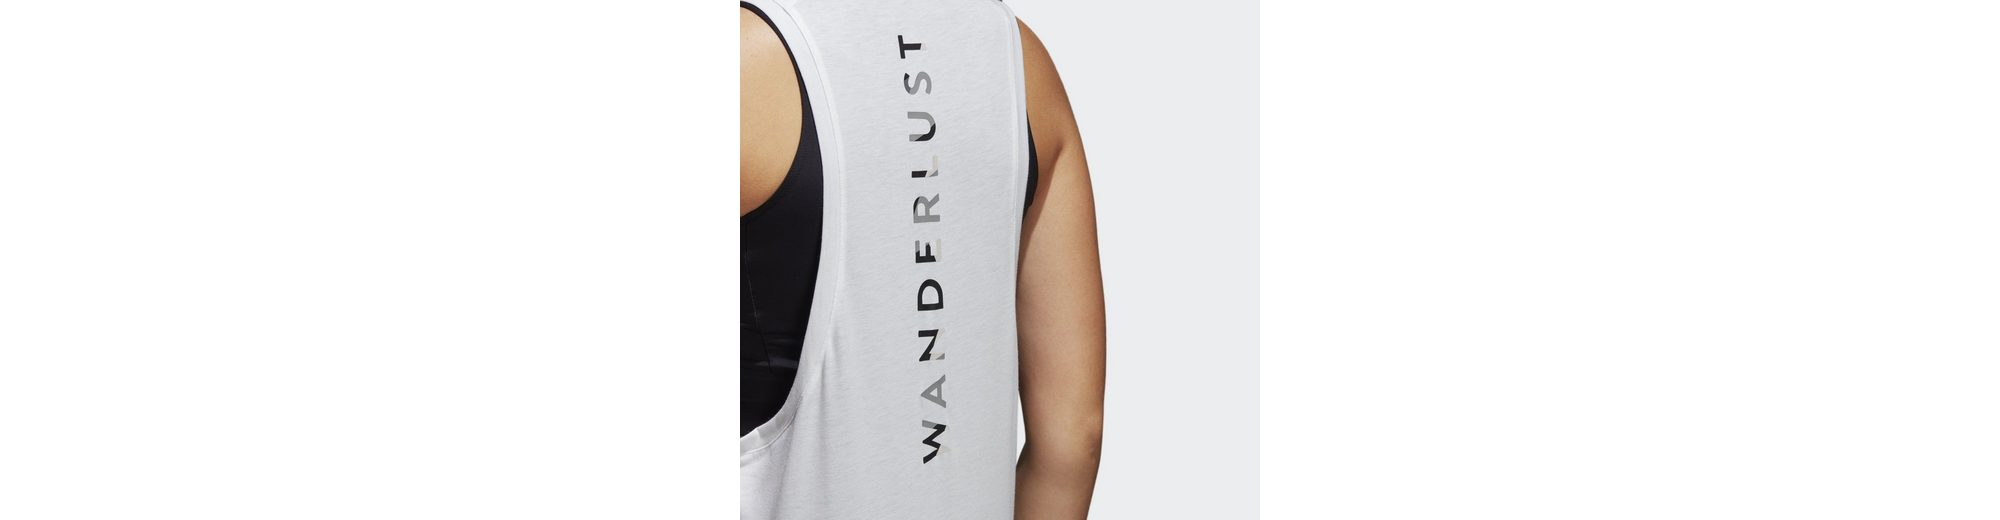 Performance Performance Wanderlust Sporttop adidas Performance Tanktop Tanktop adidas Wanderlust adidas Sporttop 0CafqP0